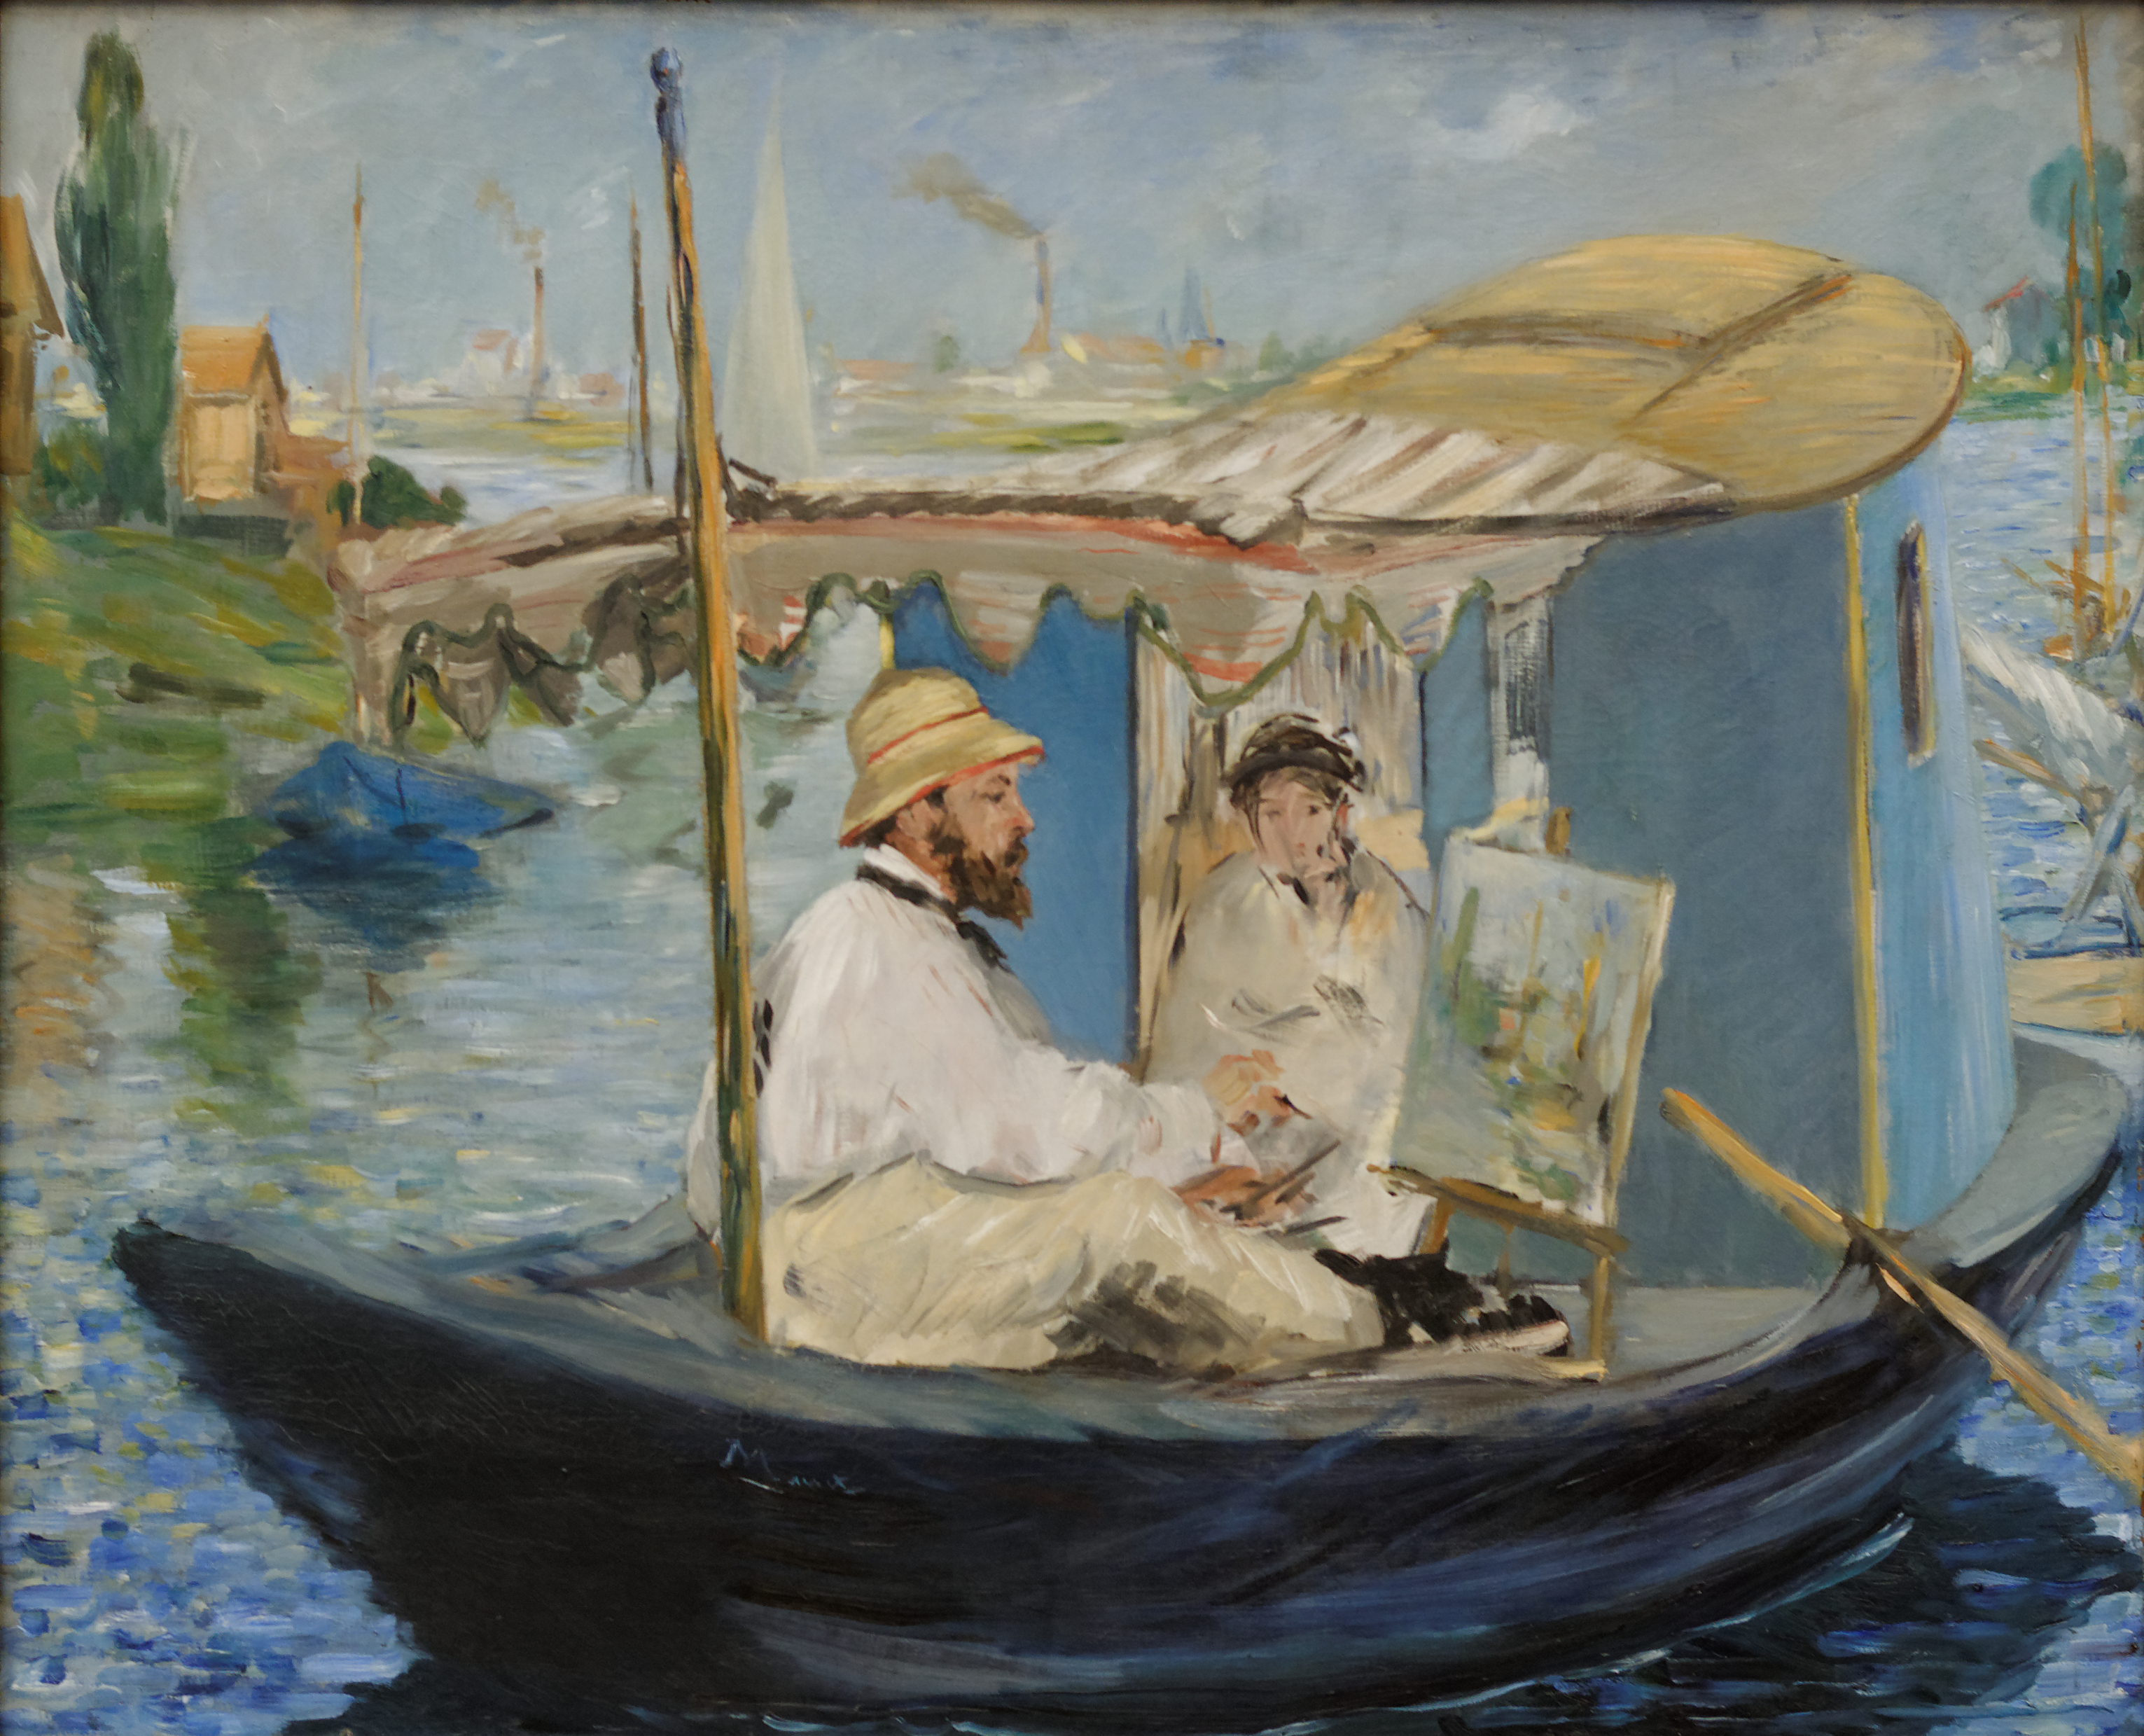 International Marine Paint Colour Chart: Monet Painting on His Studio Boat Edouard Manet 1874.jpg ,Chart